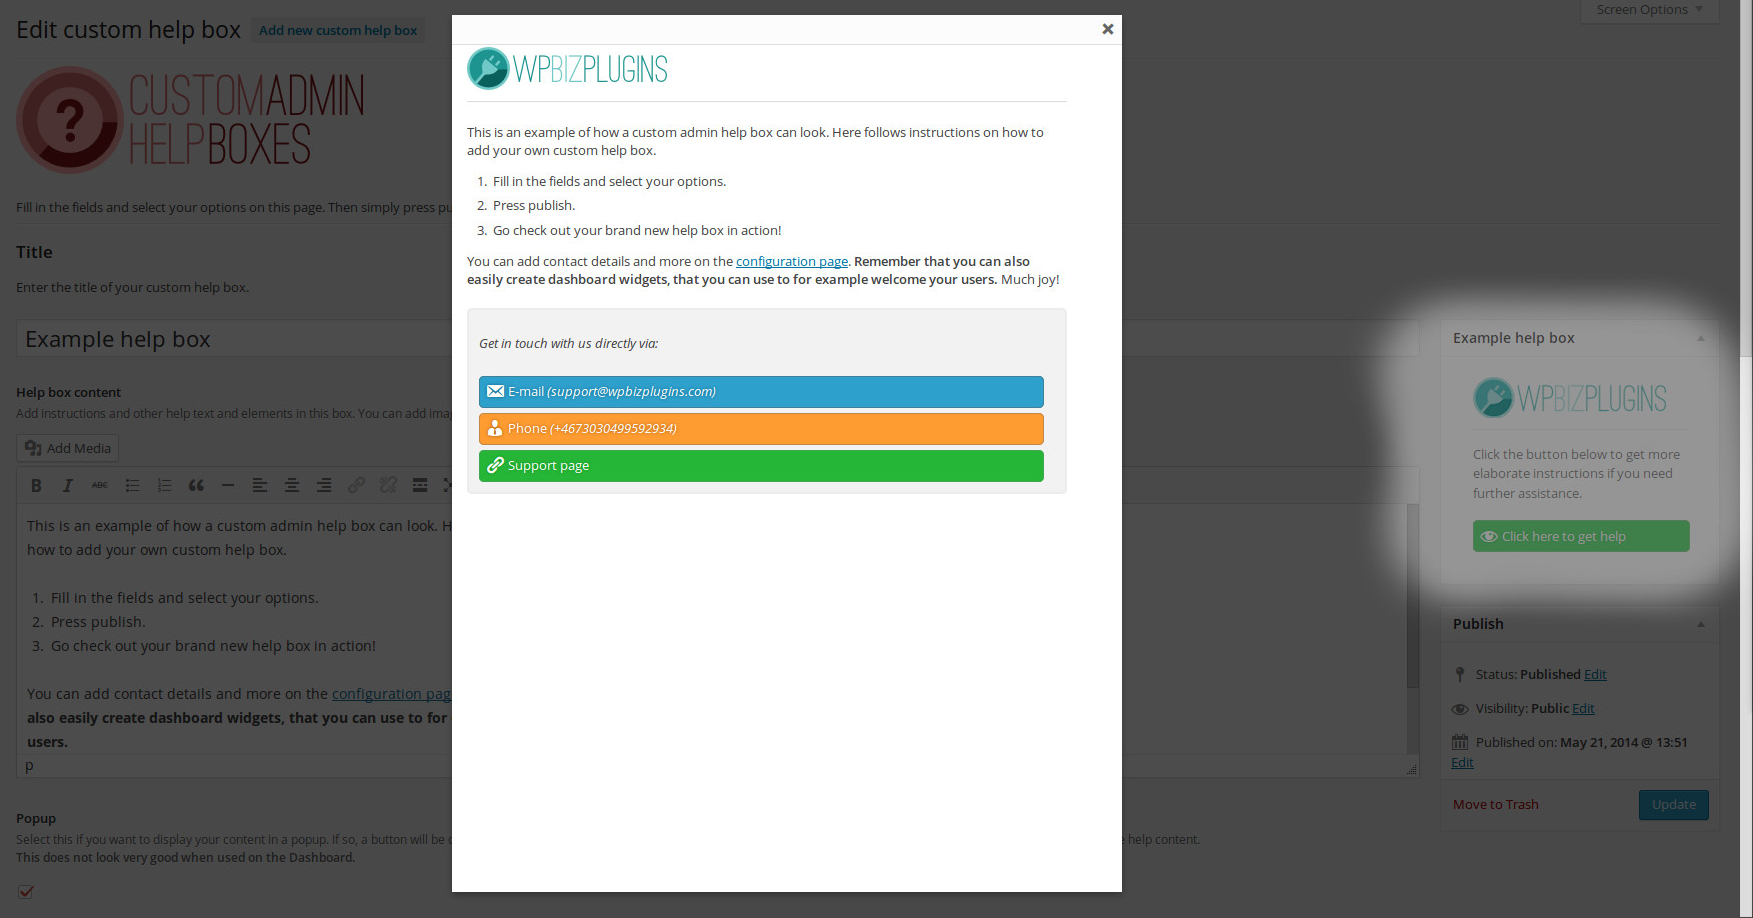 wpbizplugins-custom-admin-help-boxes screenshot 4